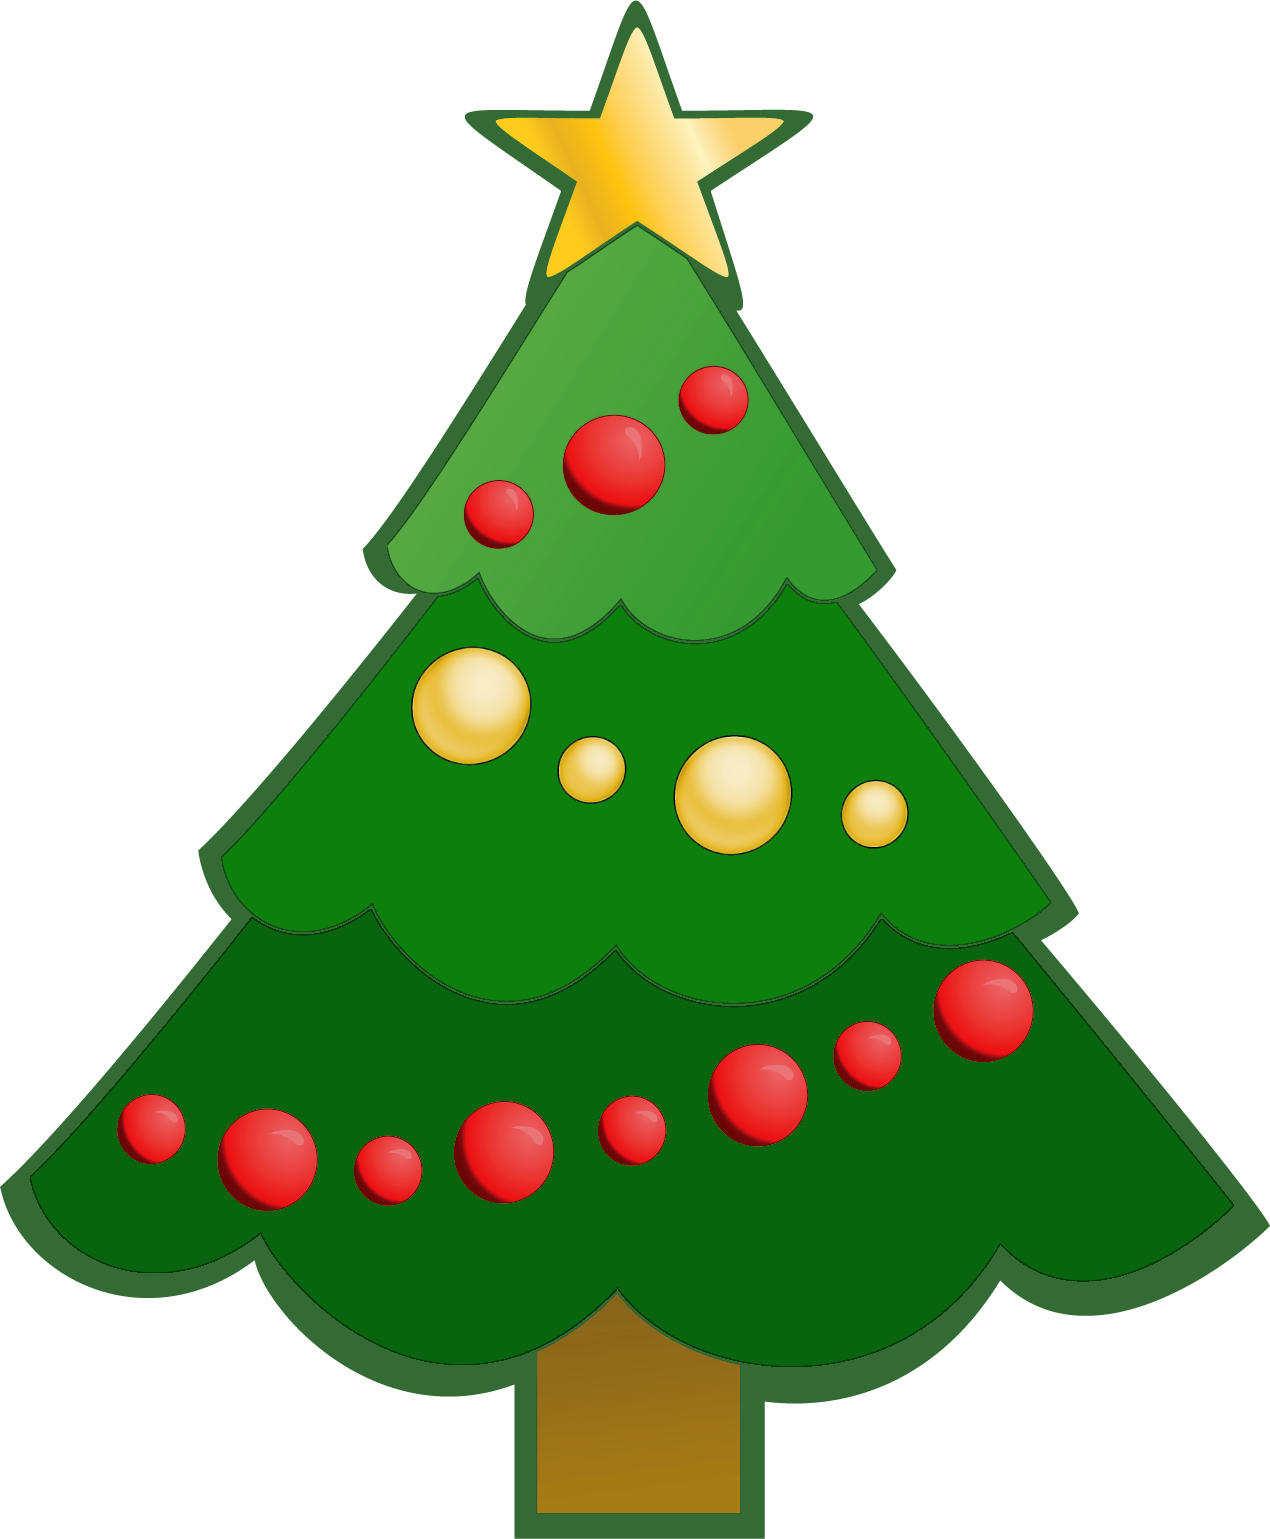 Simple Christmas Tree Clipart.